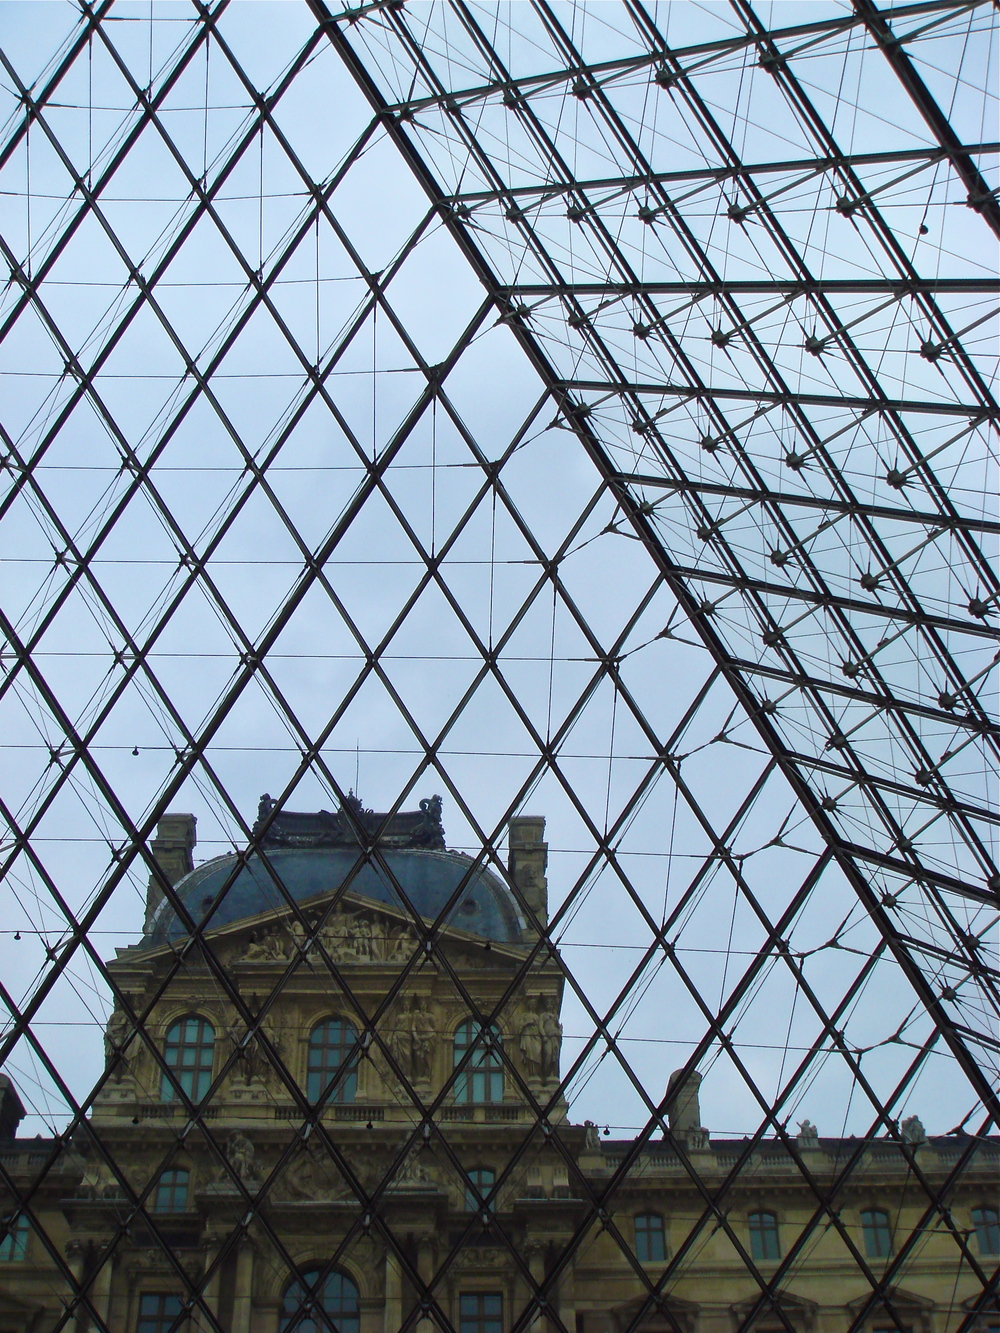 The old, historic building that houses The Louvre in Paris as seen through the front entrance — the infamous modern glass pyramid.